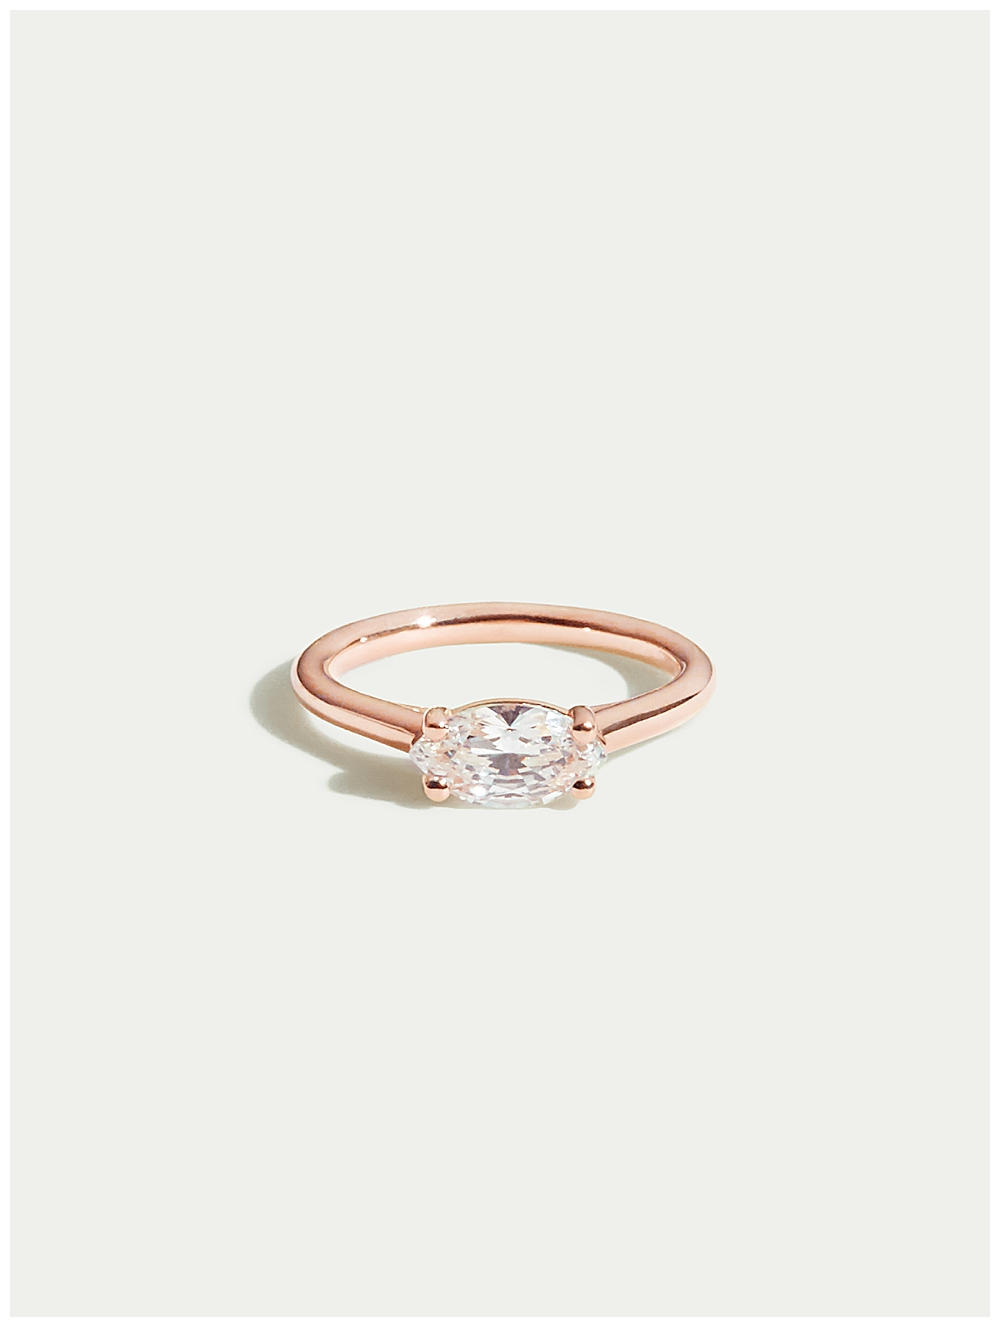 unisex-engagement-rings-13